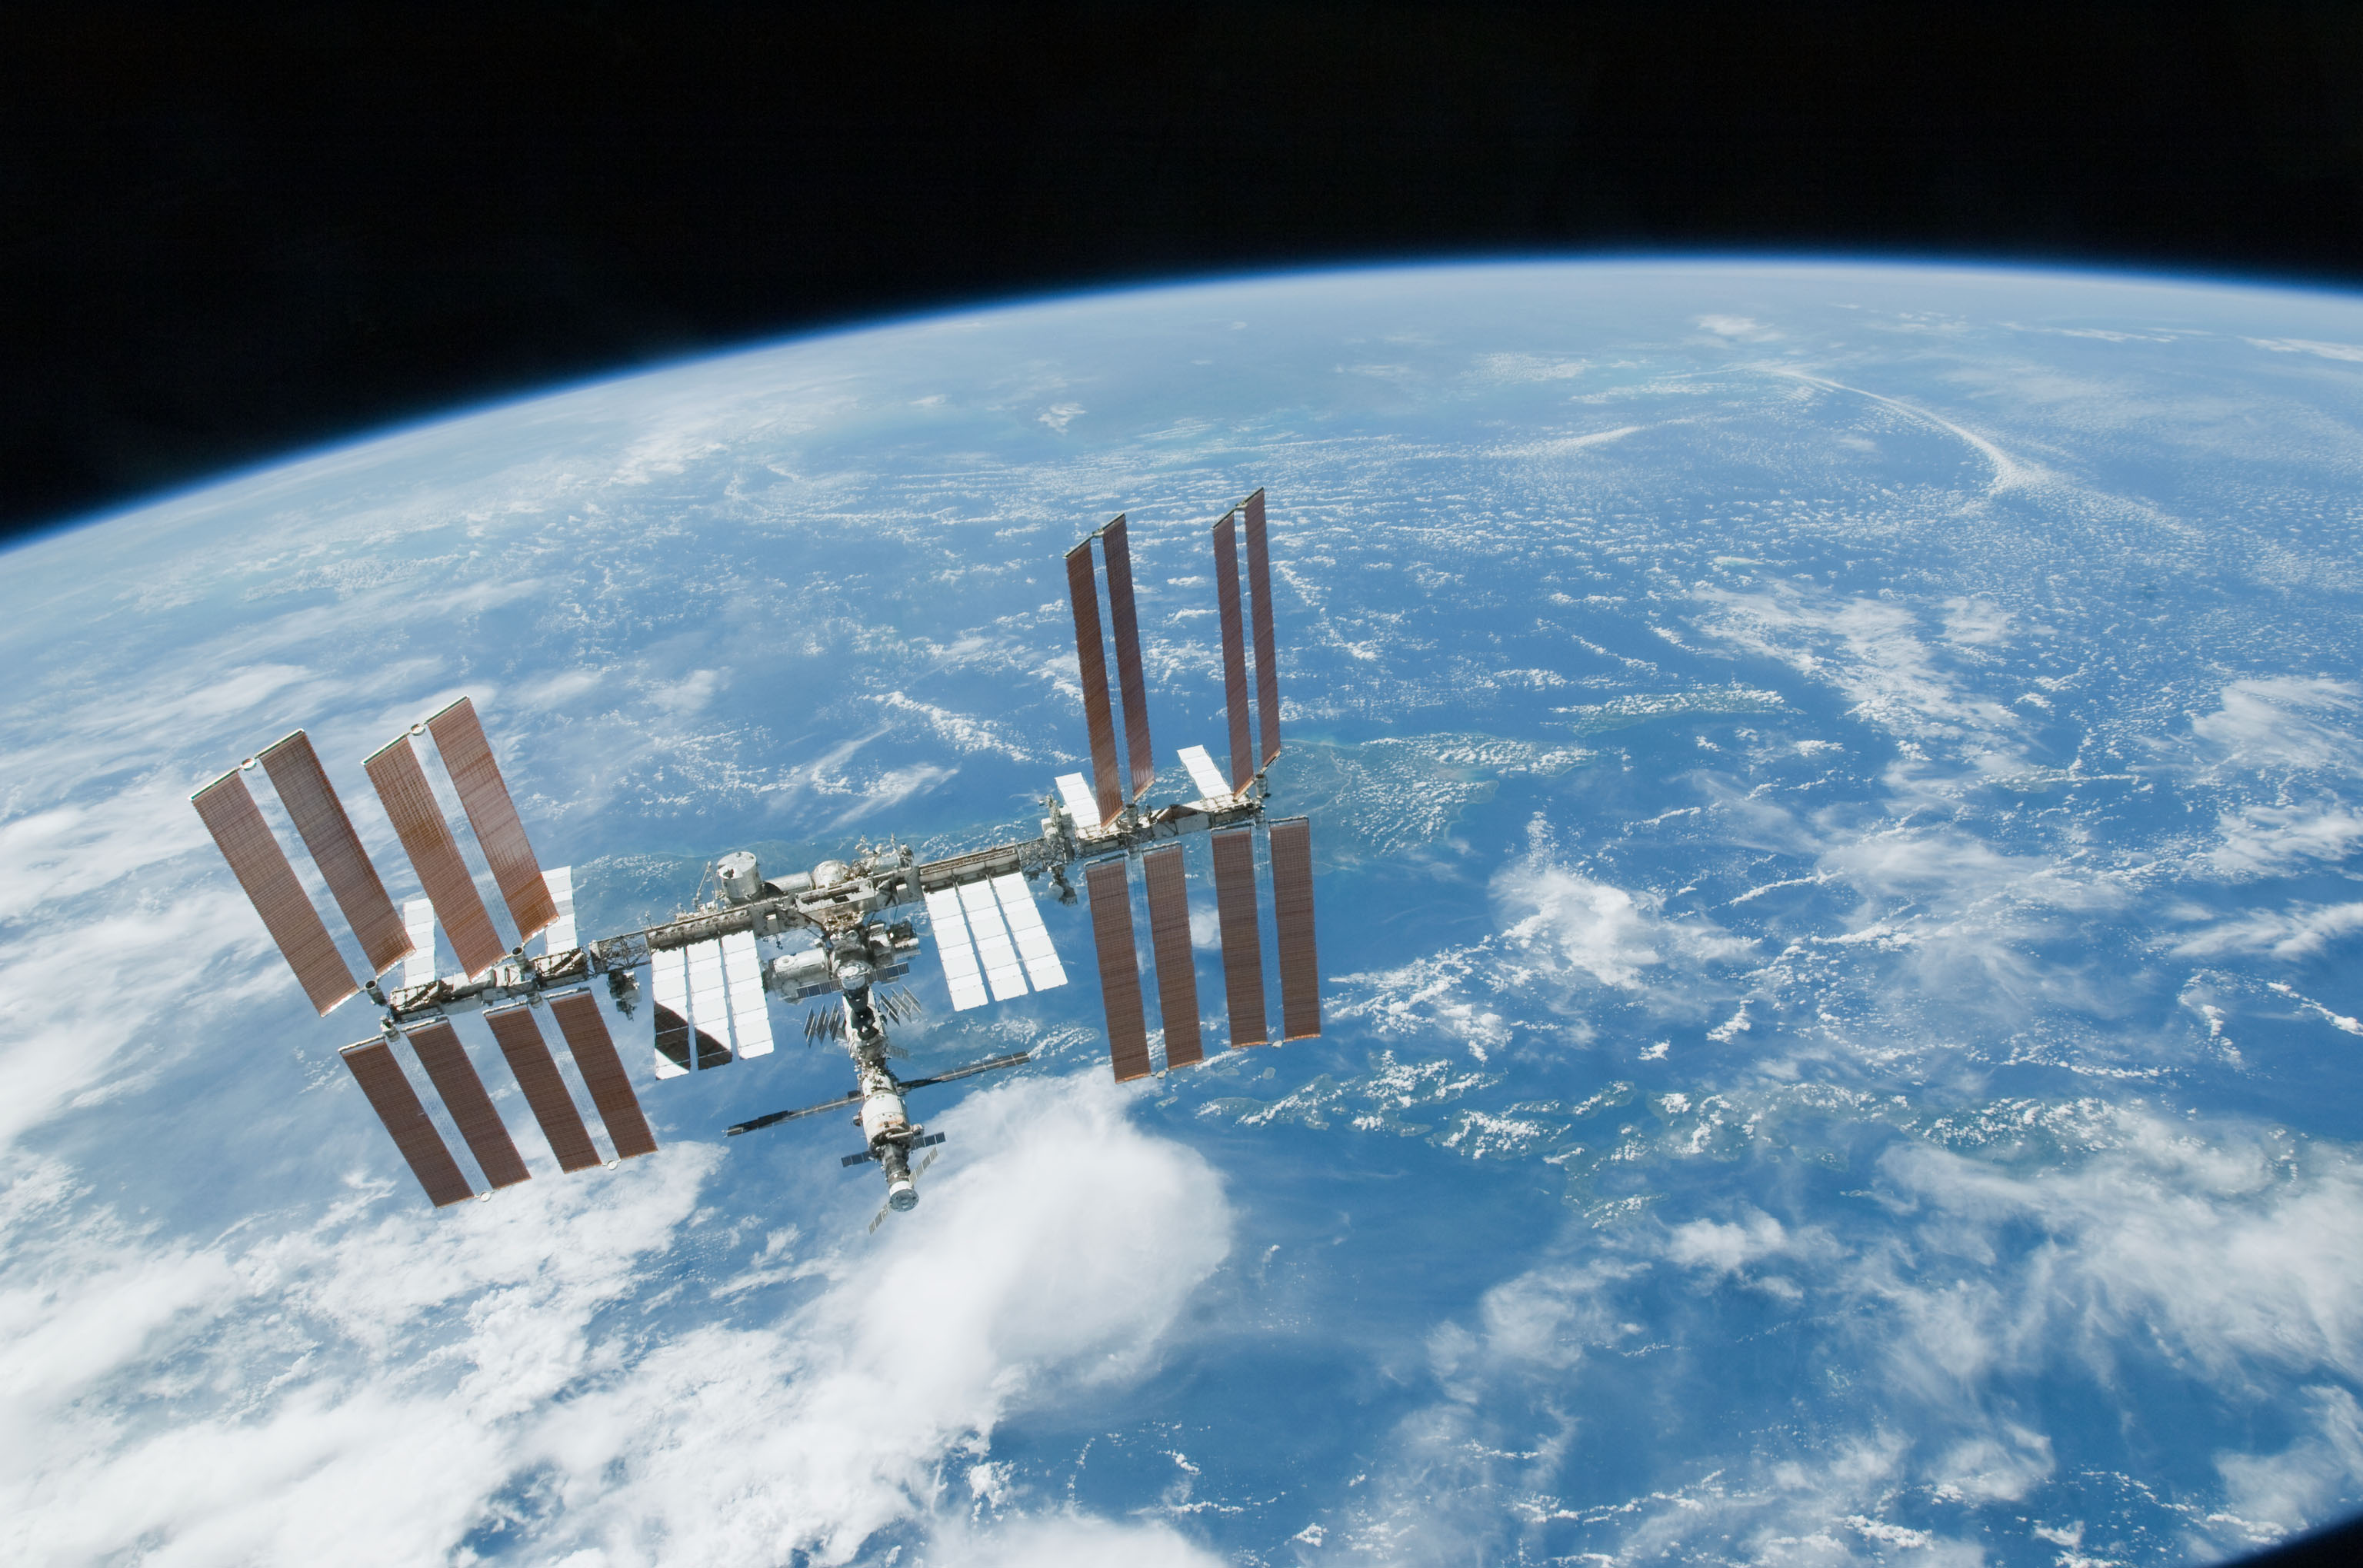 International Space Station members were forced to take emergency shelter Thursday morning.